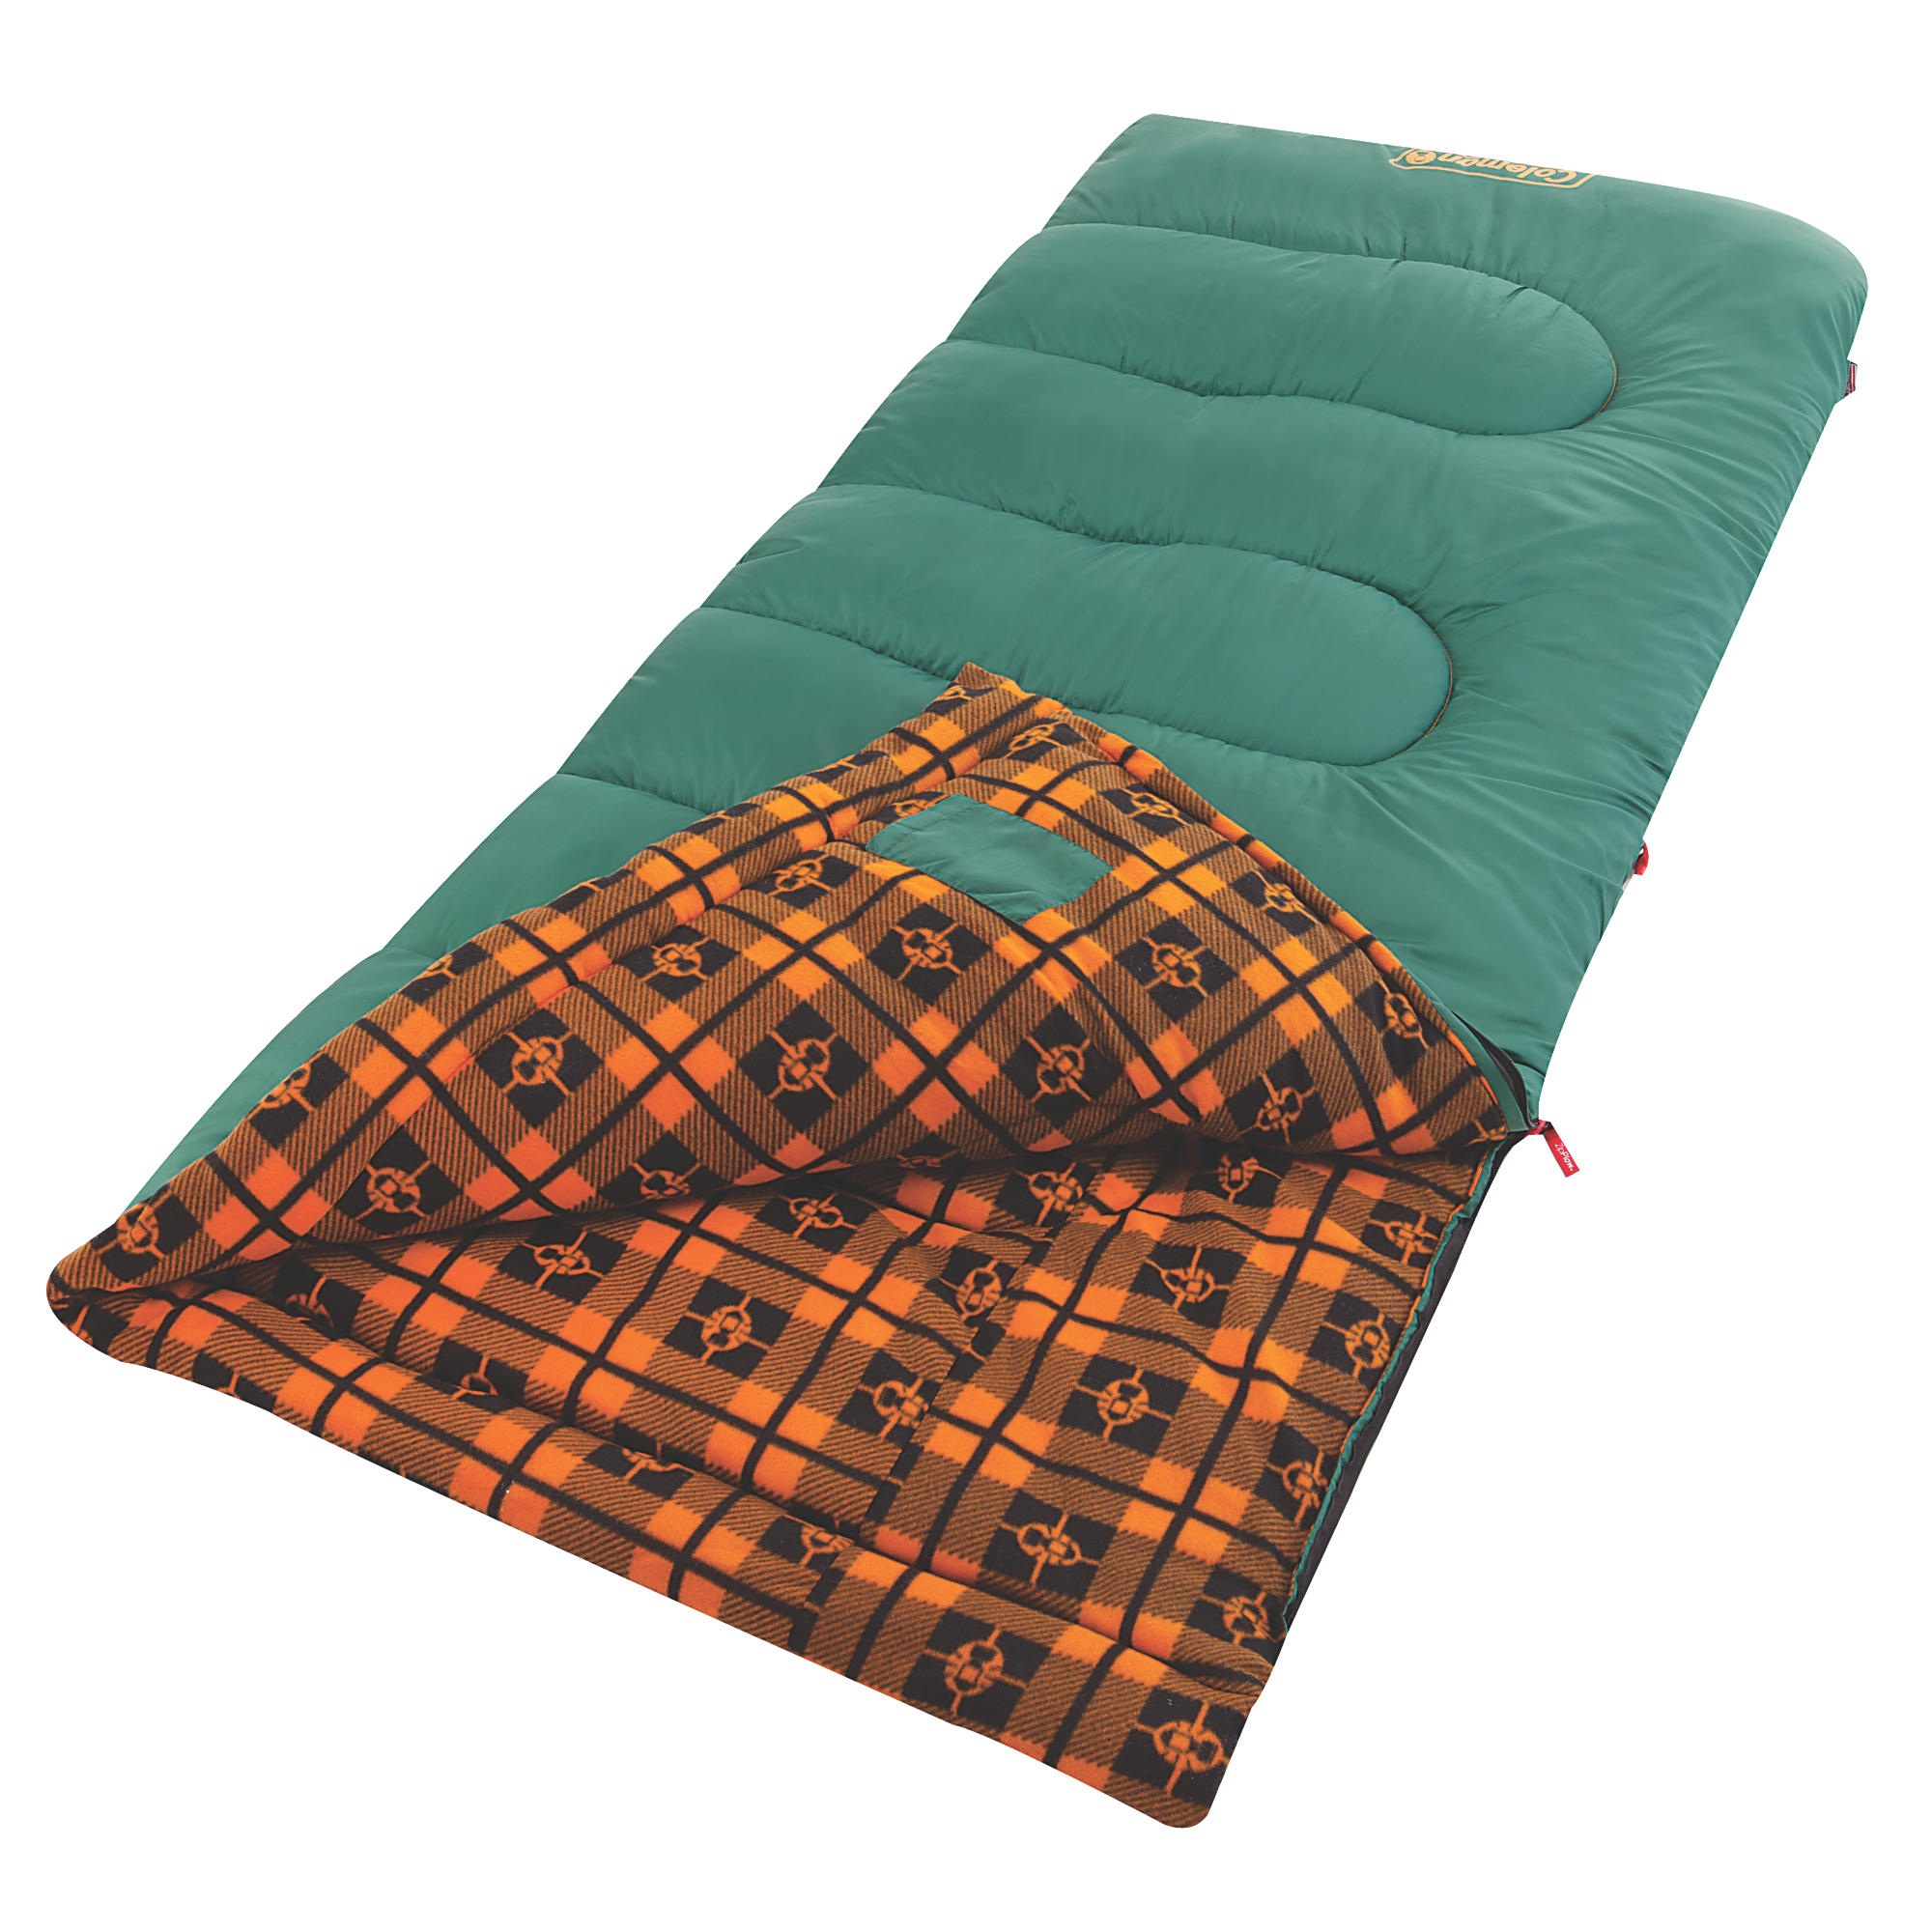 Magic Cloth Canadian Tire: Airbeds & Bags